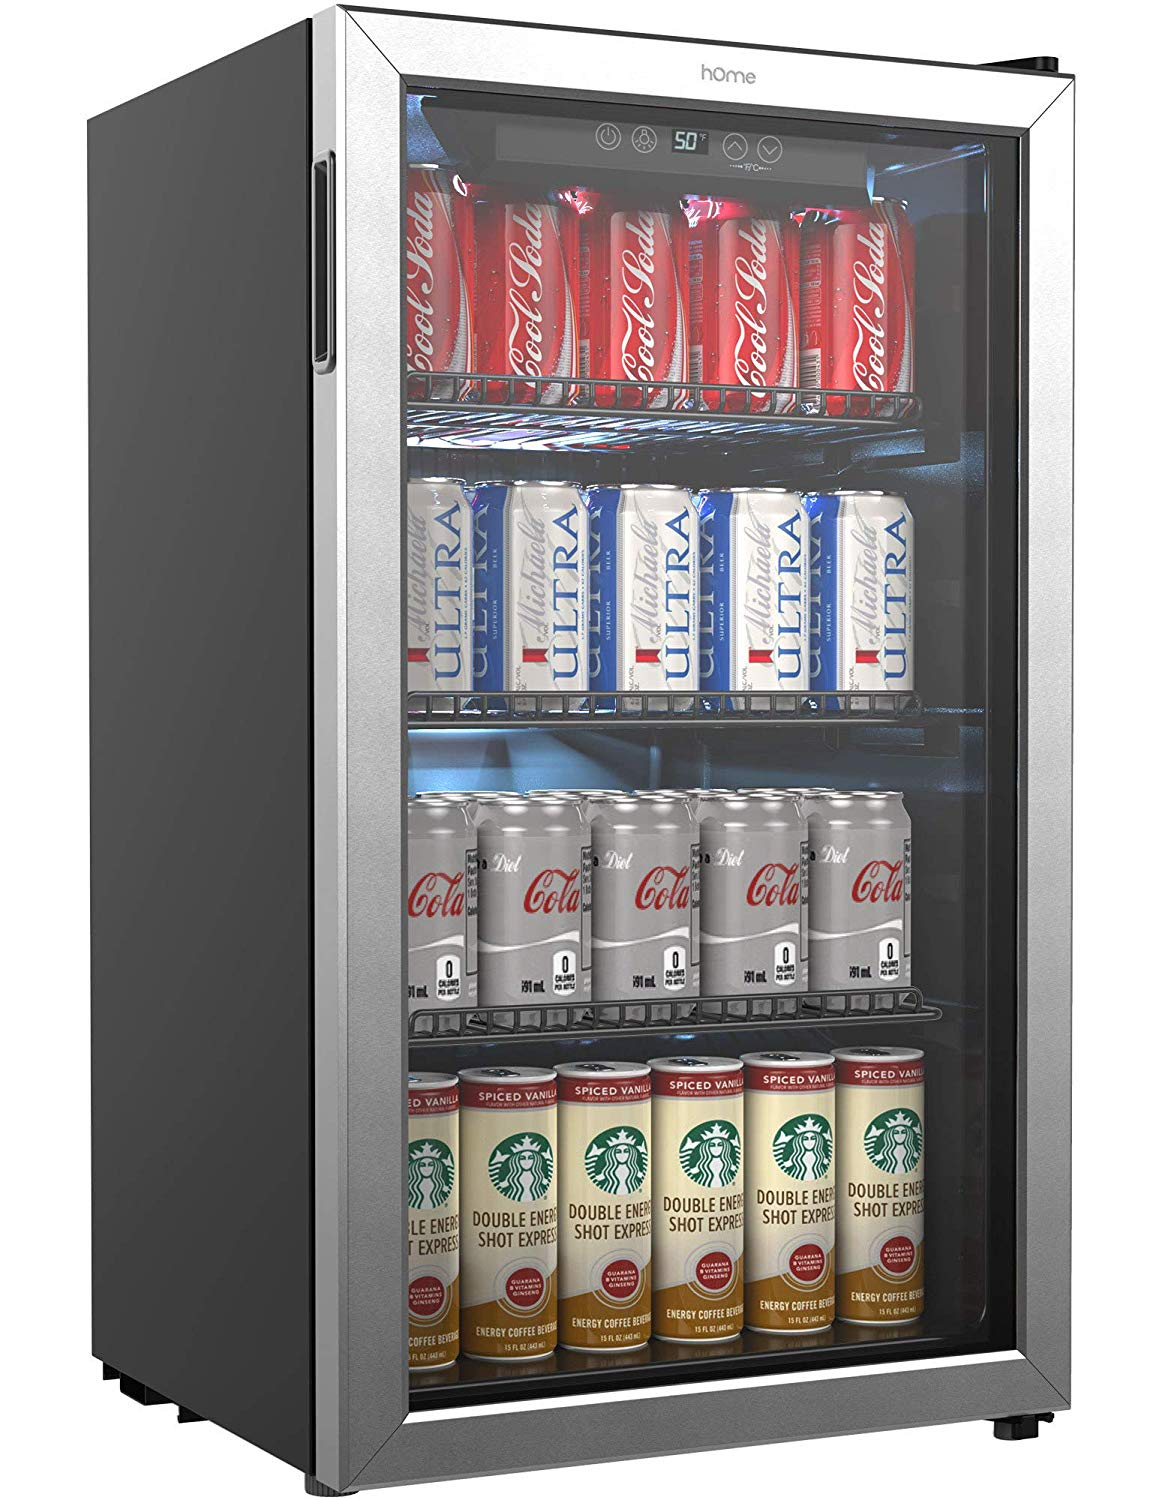 Homelabs beverage and mini fridge with glass door, one of the 7 best refrigerator for beverages and beer bottles.